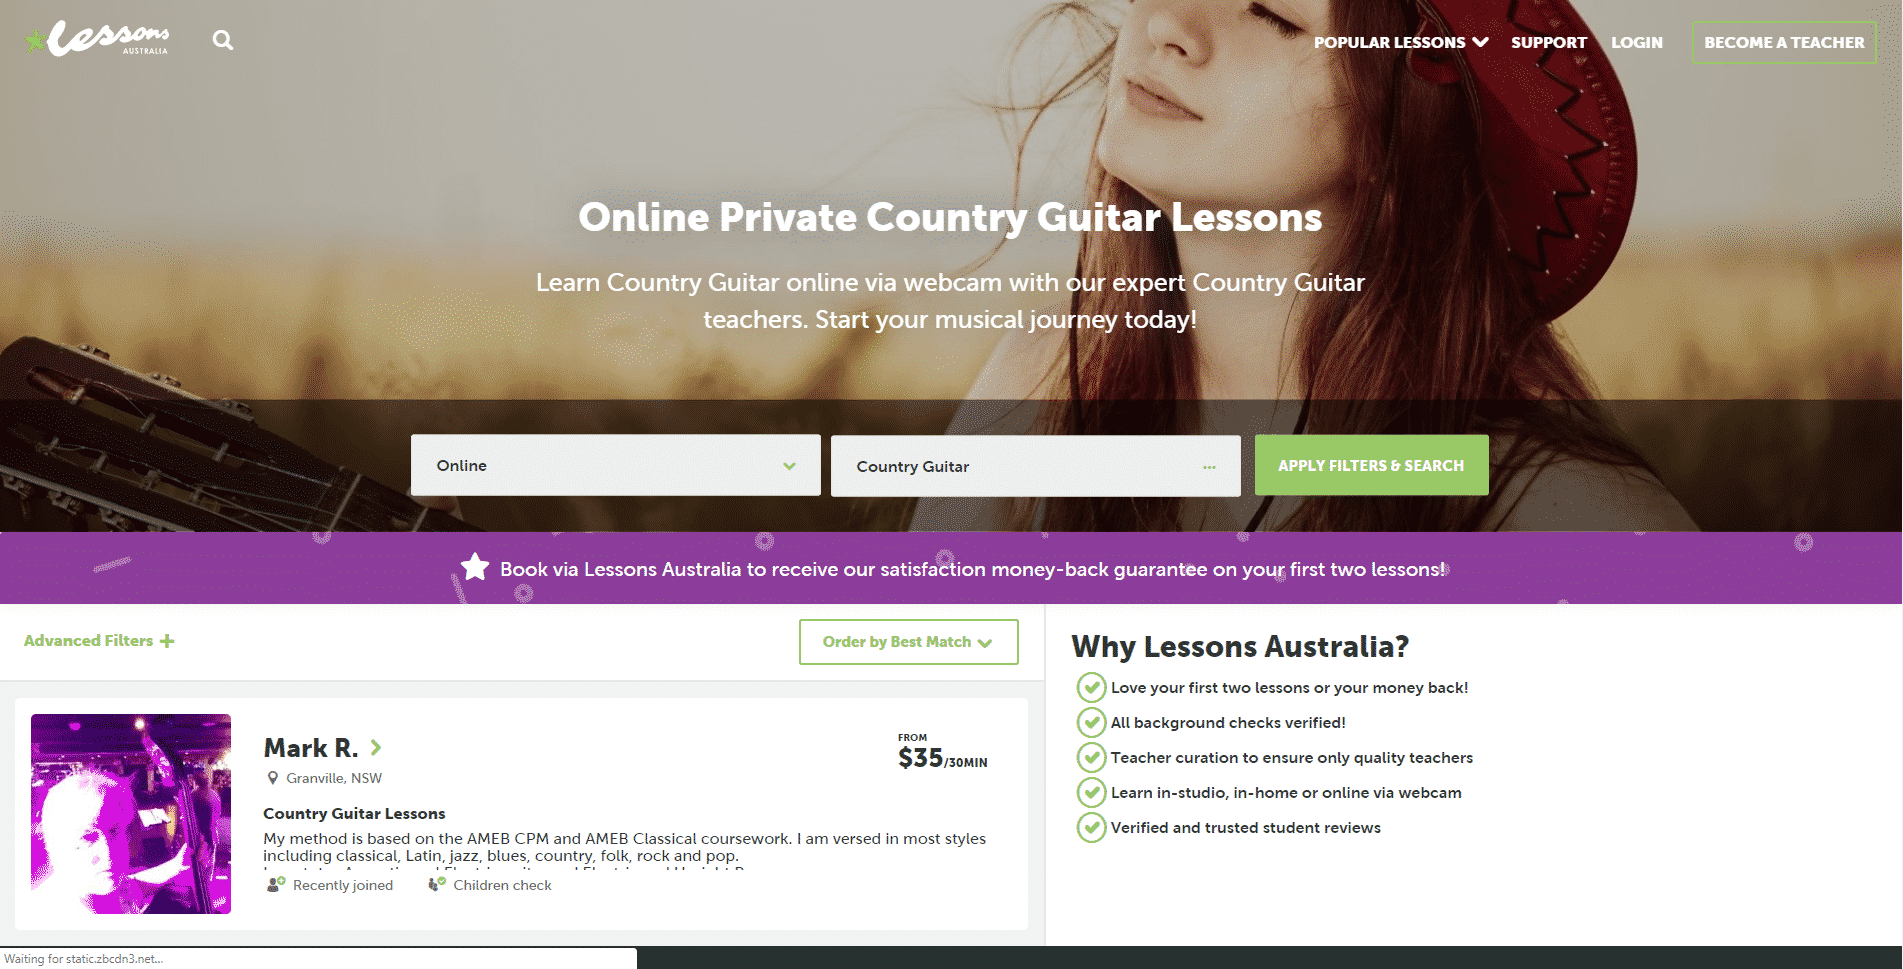 Lessons Australia – Online Country Music Lessons